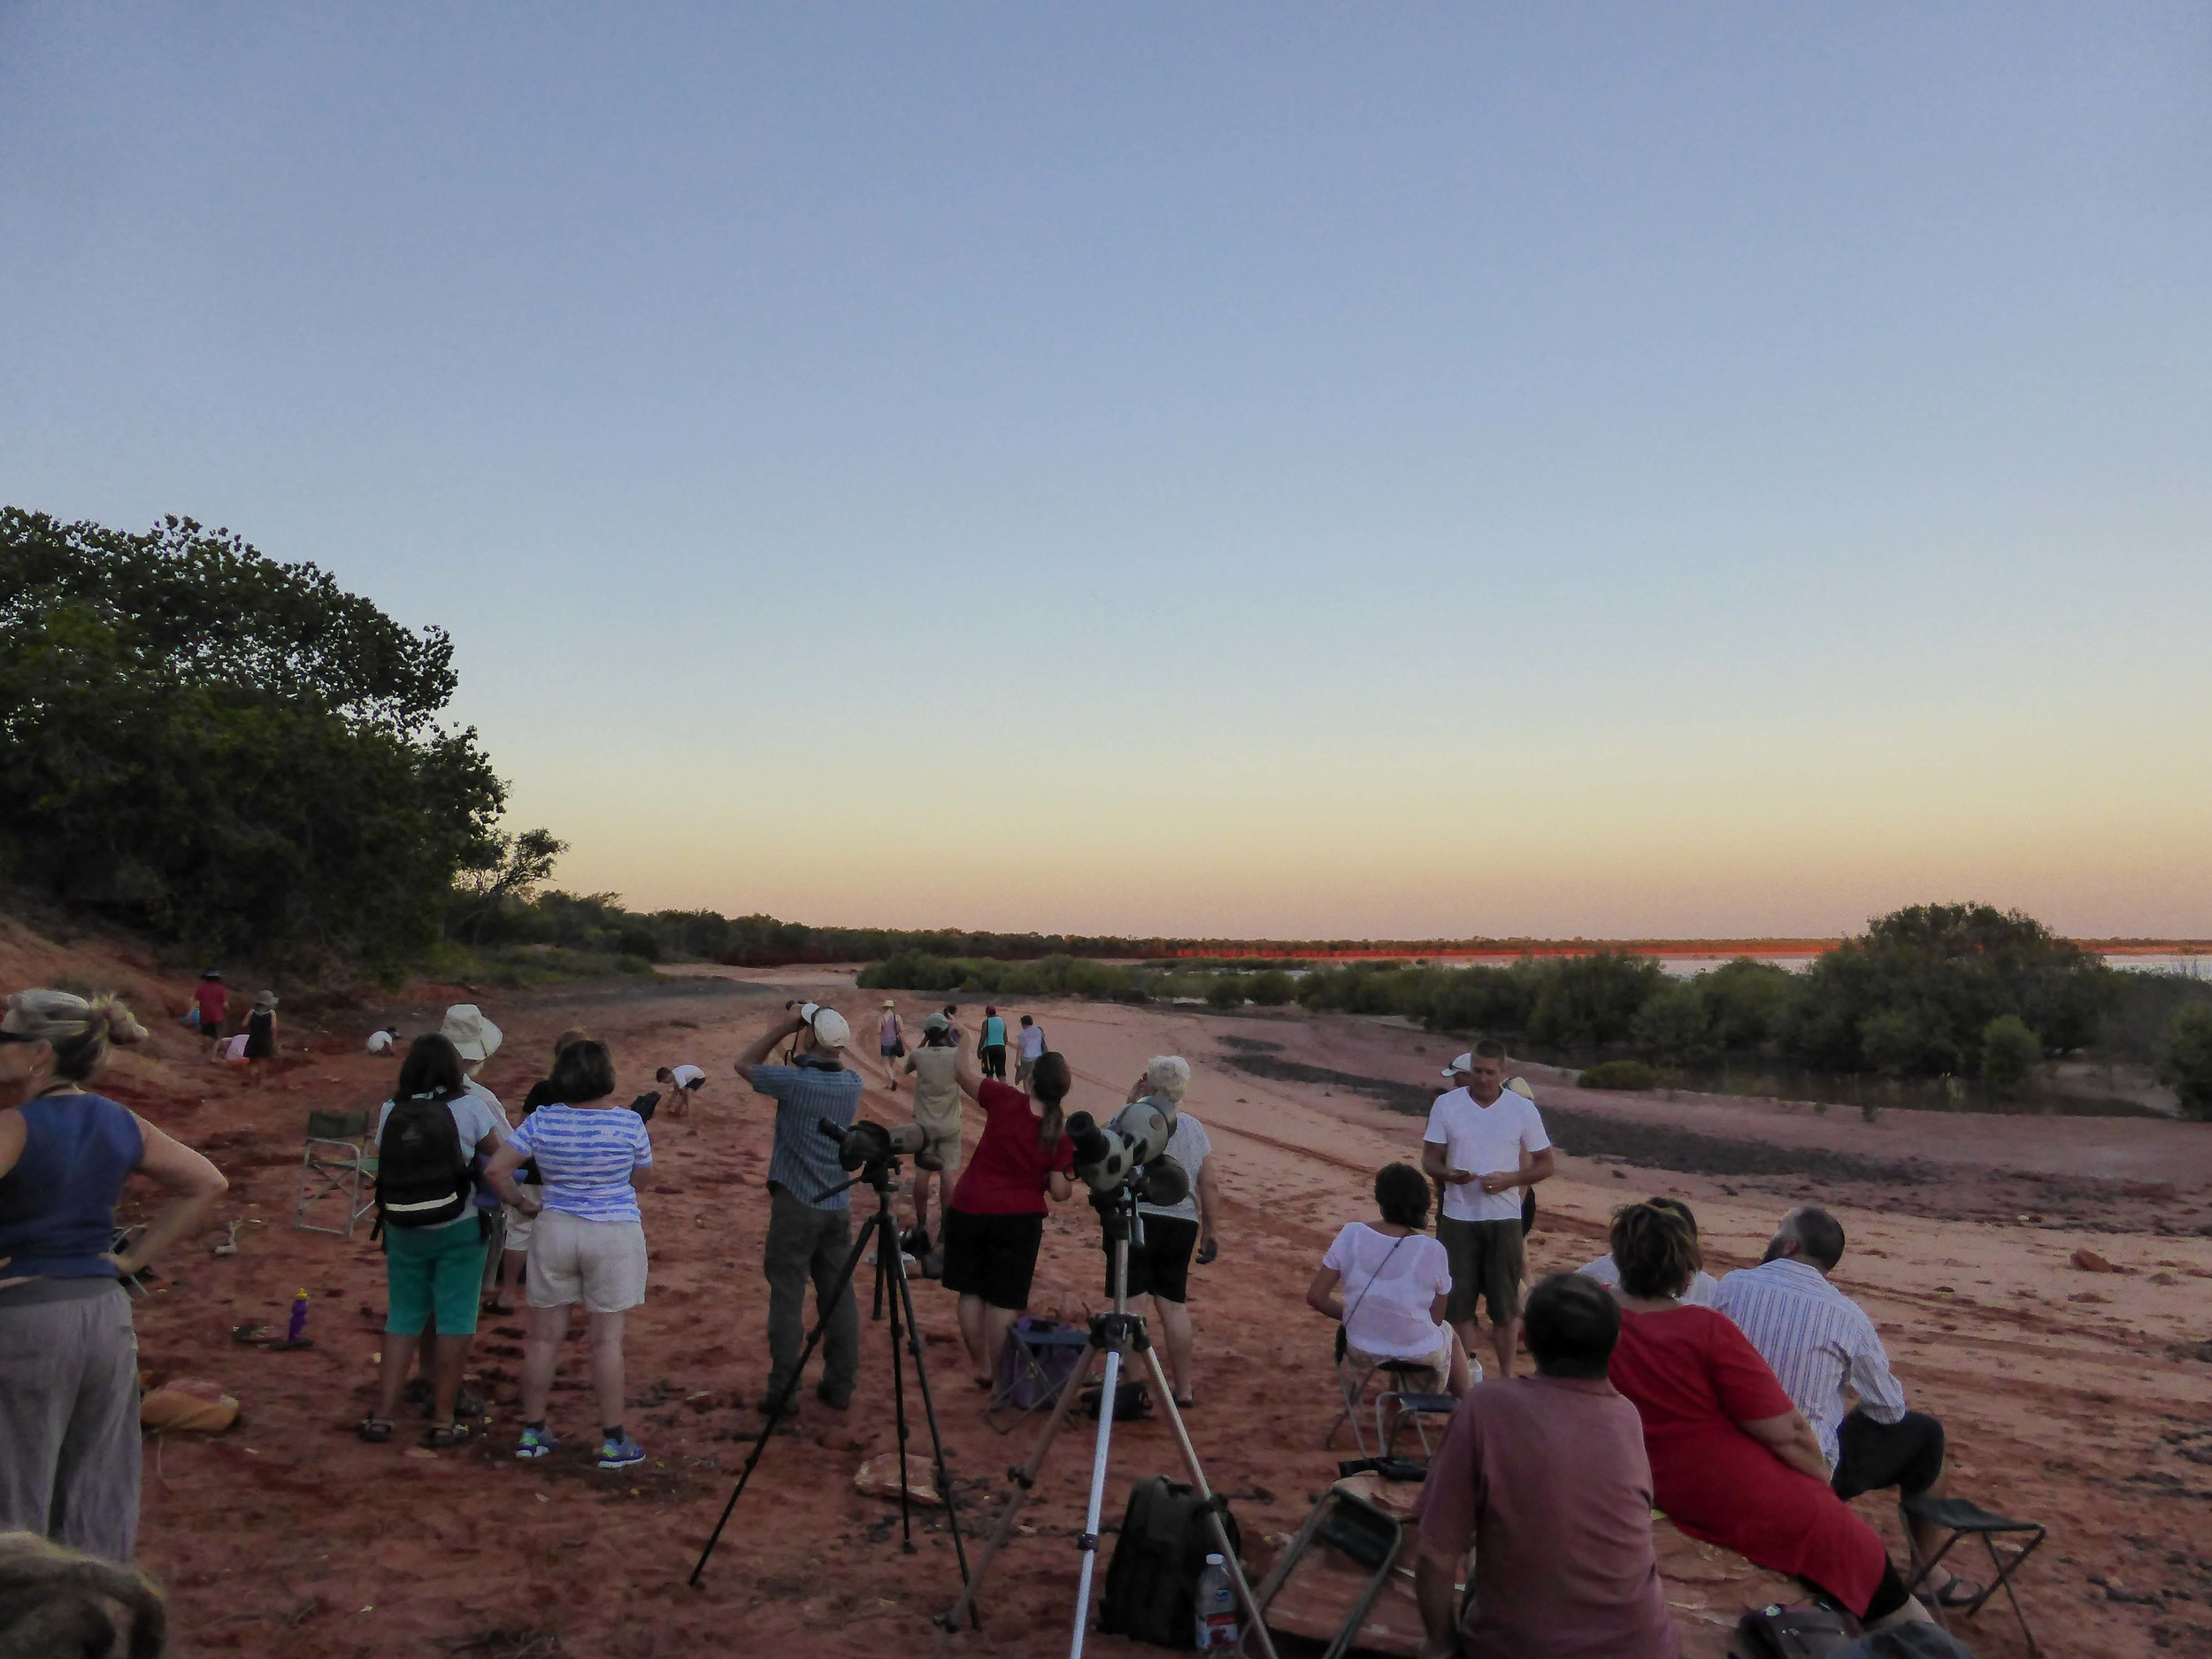 BBO staff and guests watching the action on the shore of Roebuck Bay. Photo: Ric Else 2015